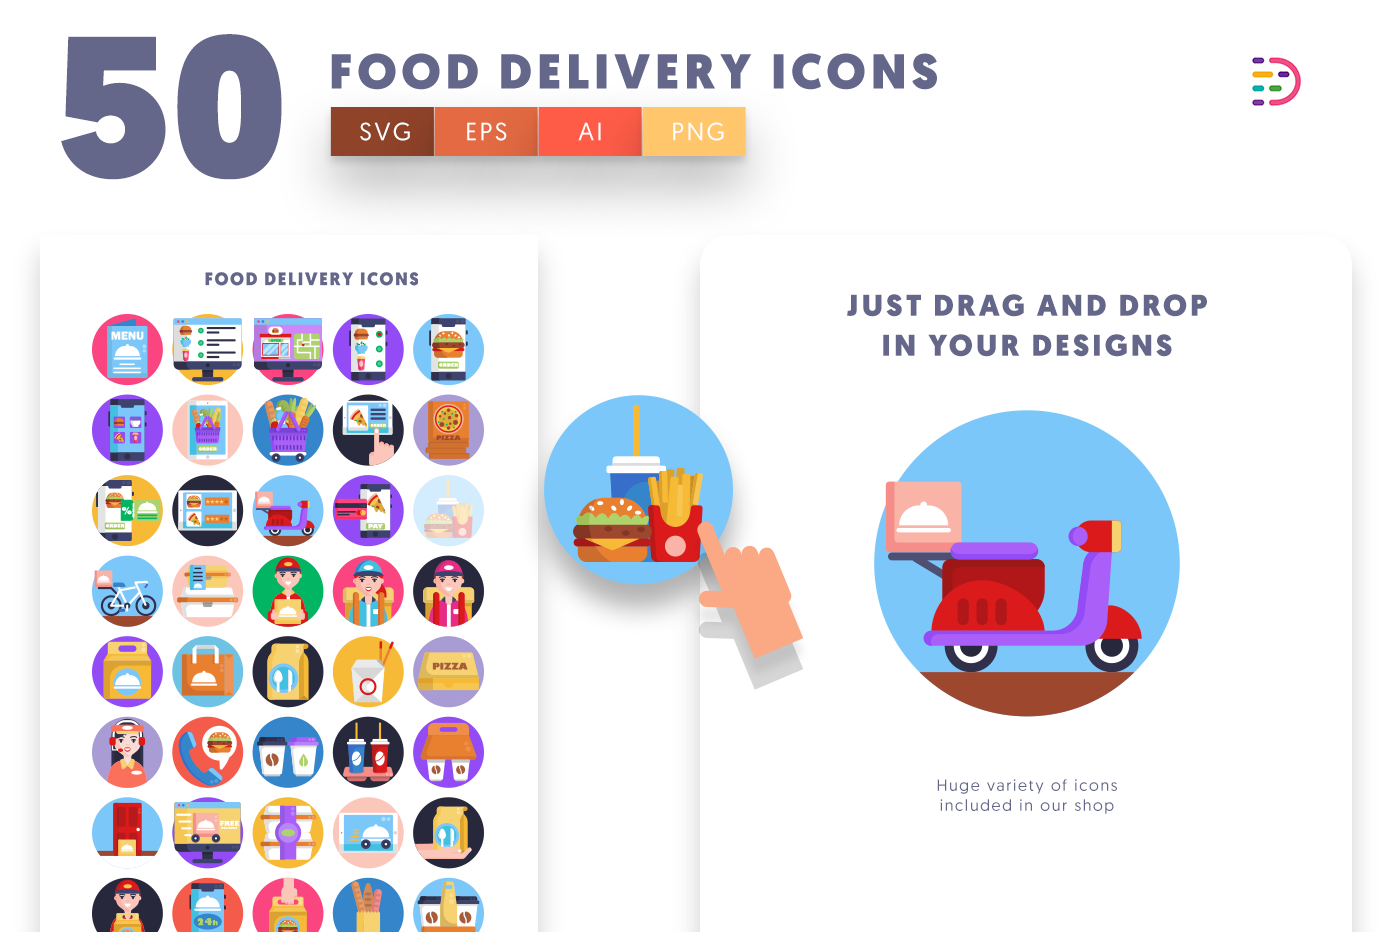 Drag and drop vector 50 Food Delivery Icons